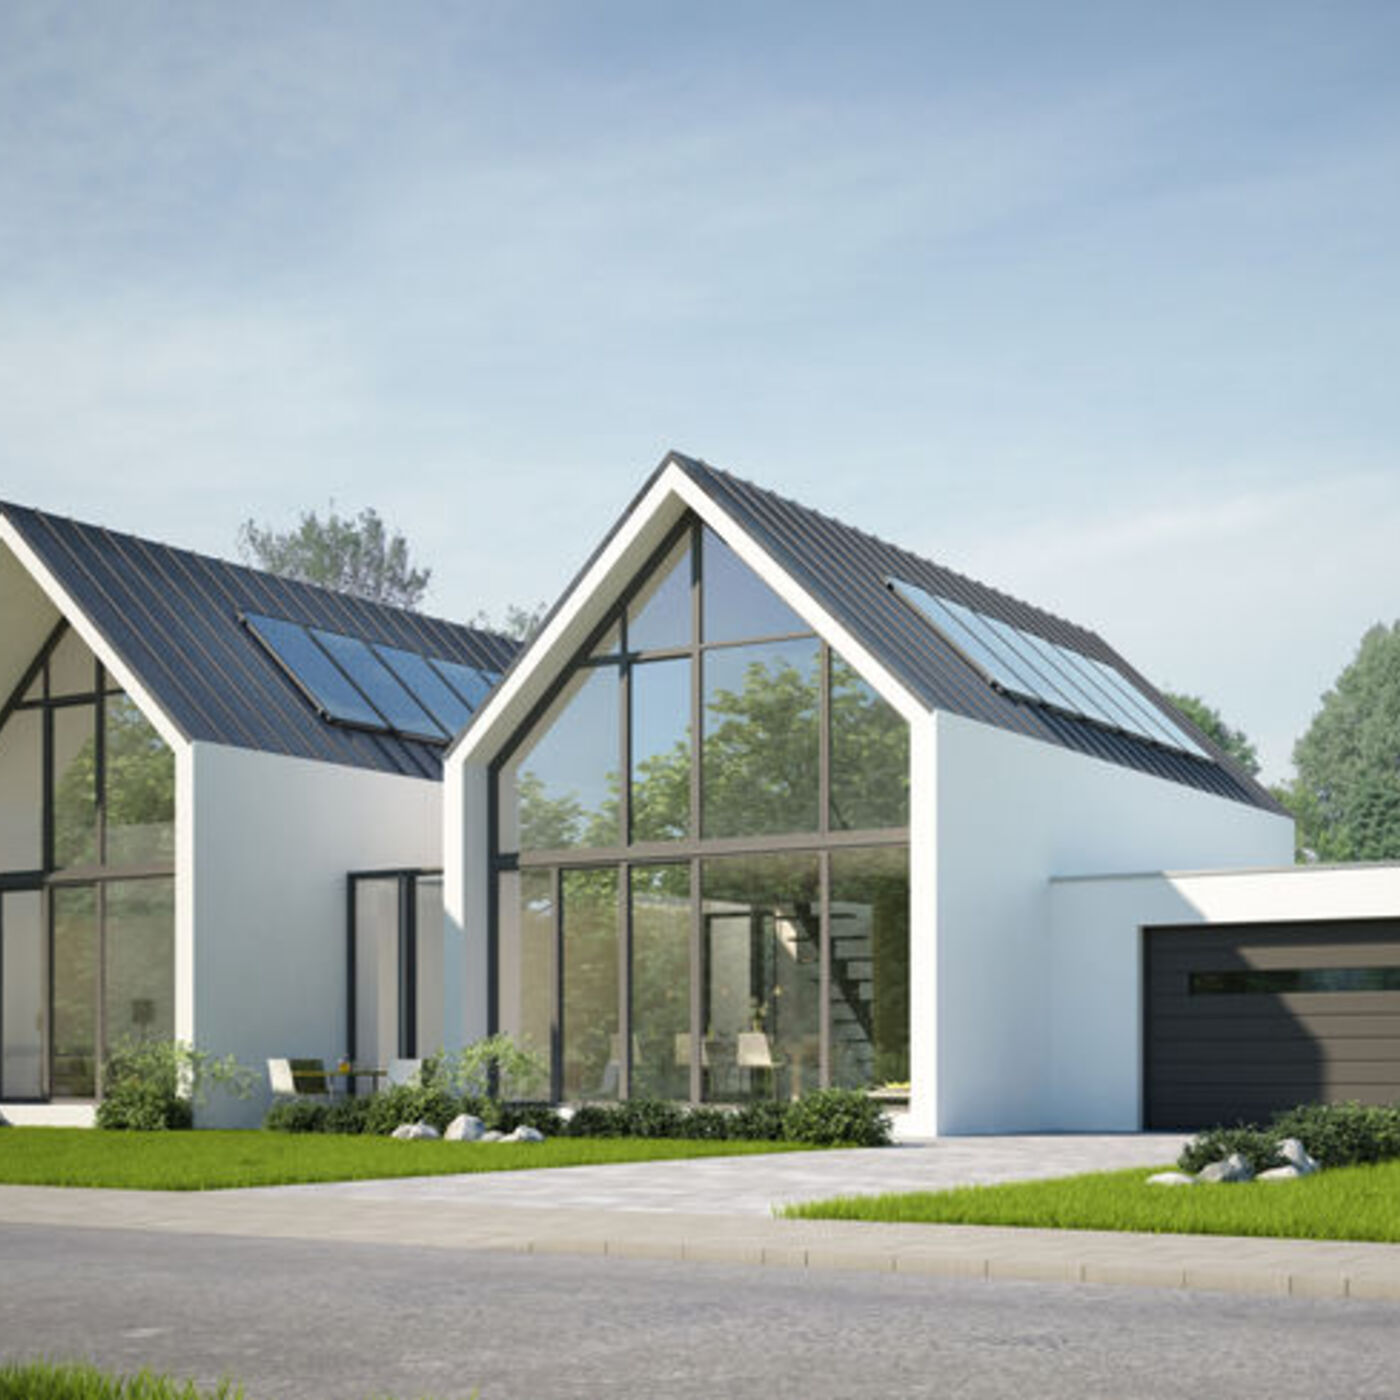 Rowena discusses new home building and today's housing figures - First News with Mark Starling